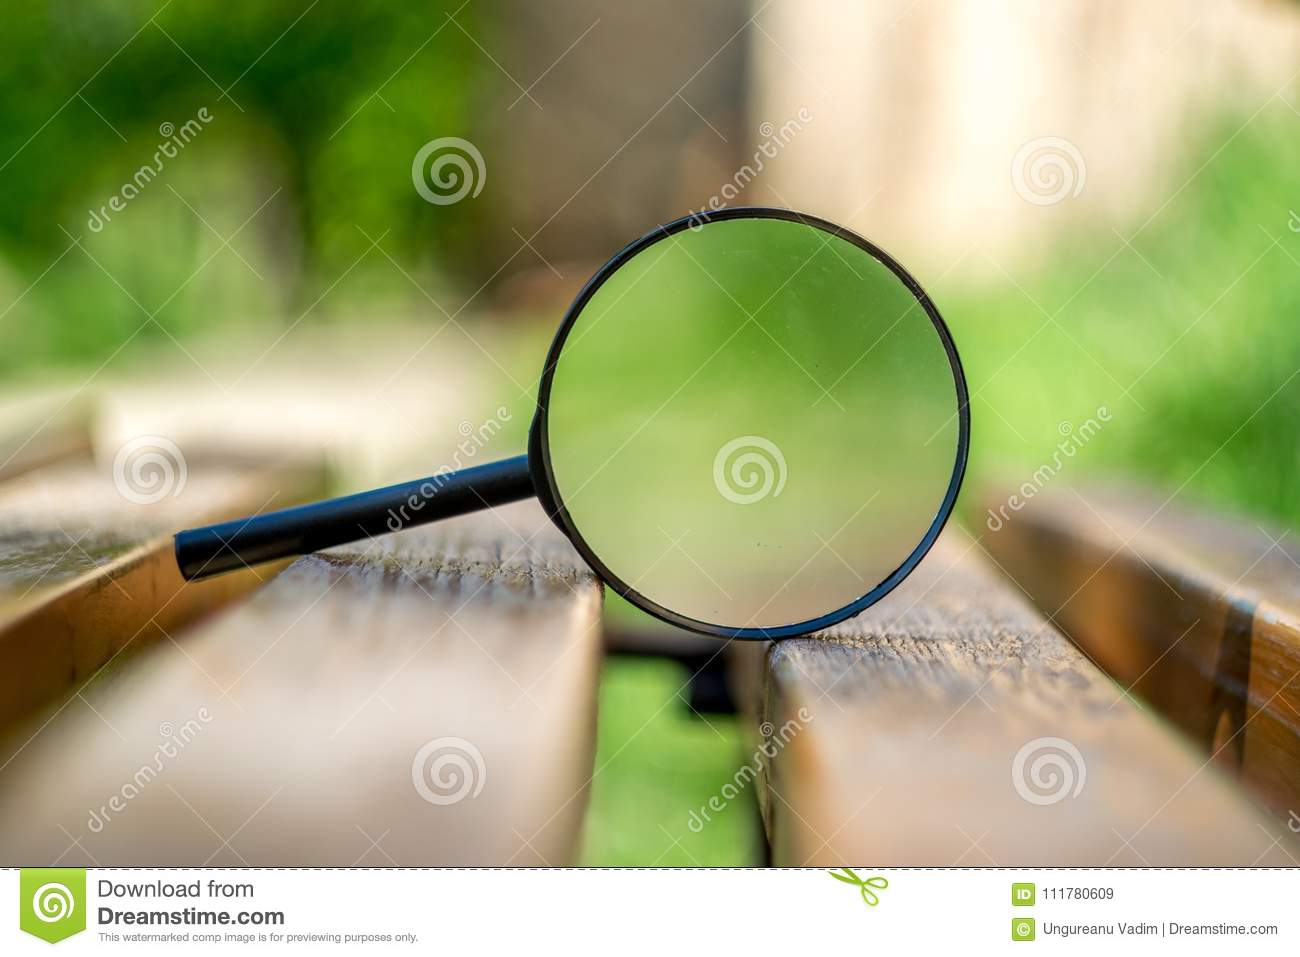 Beautiful close up on a magnifying glass